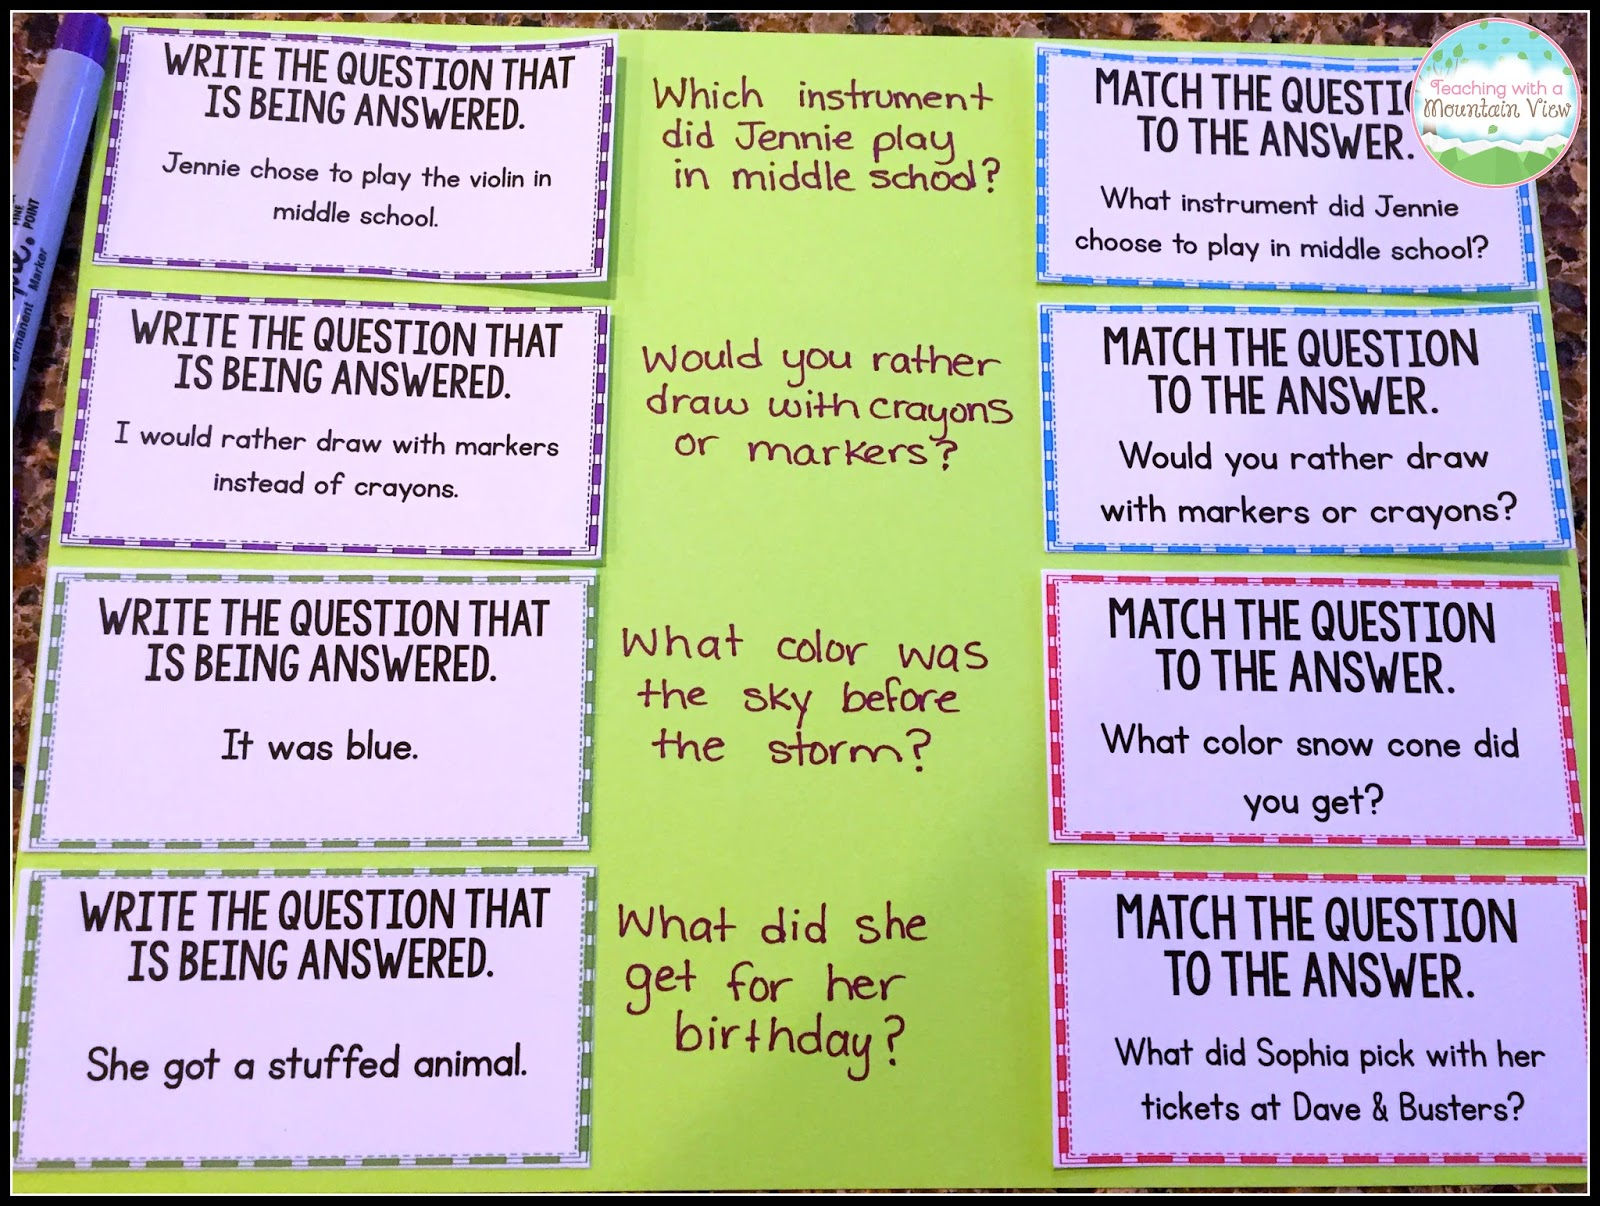 medium resolution of Restating the Question Lesson   Teaching With a Mountain View   Bloglovin'